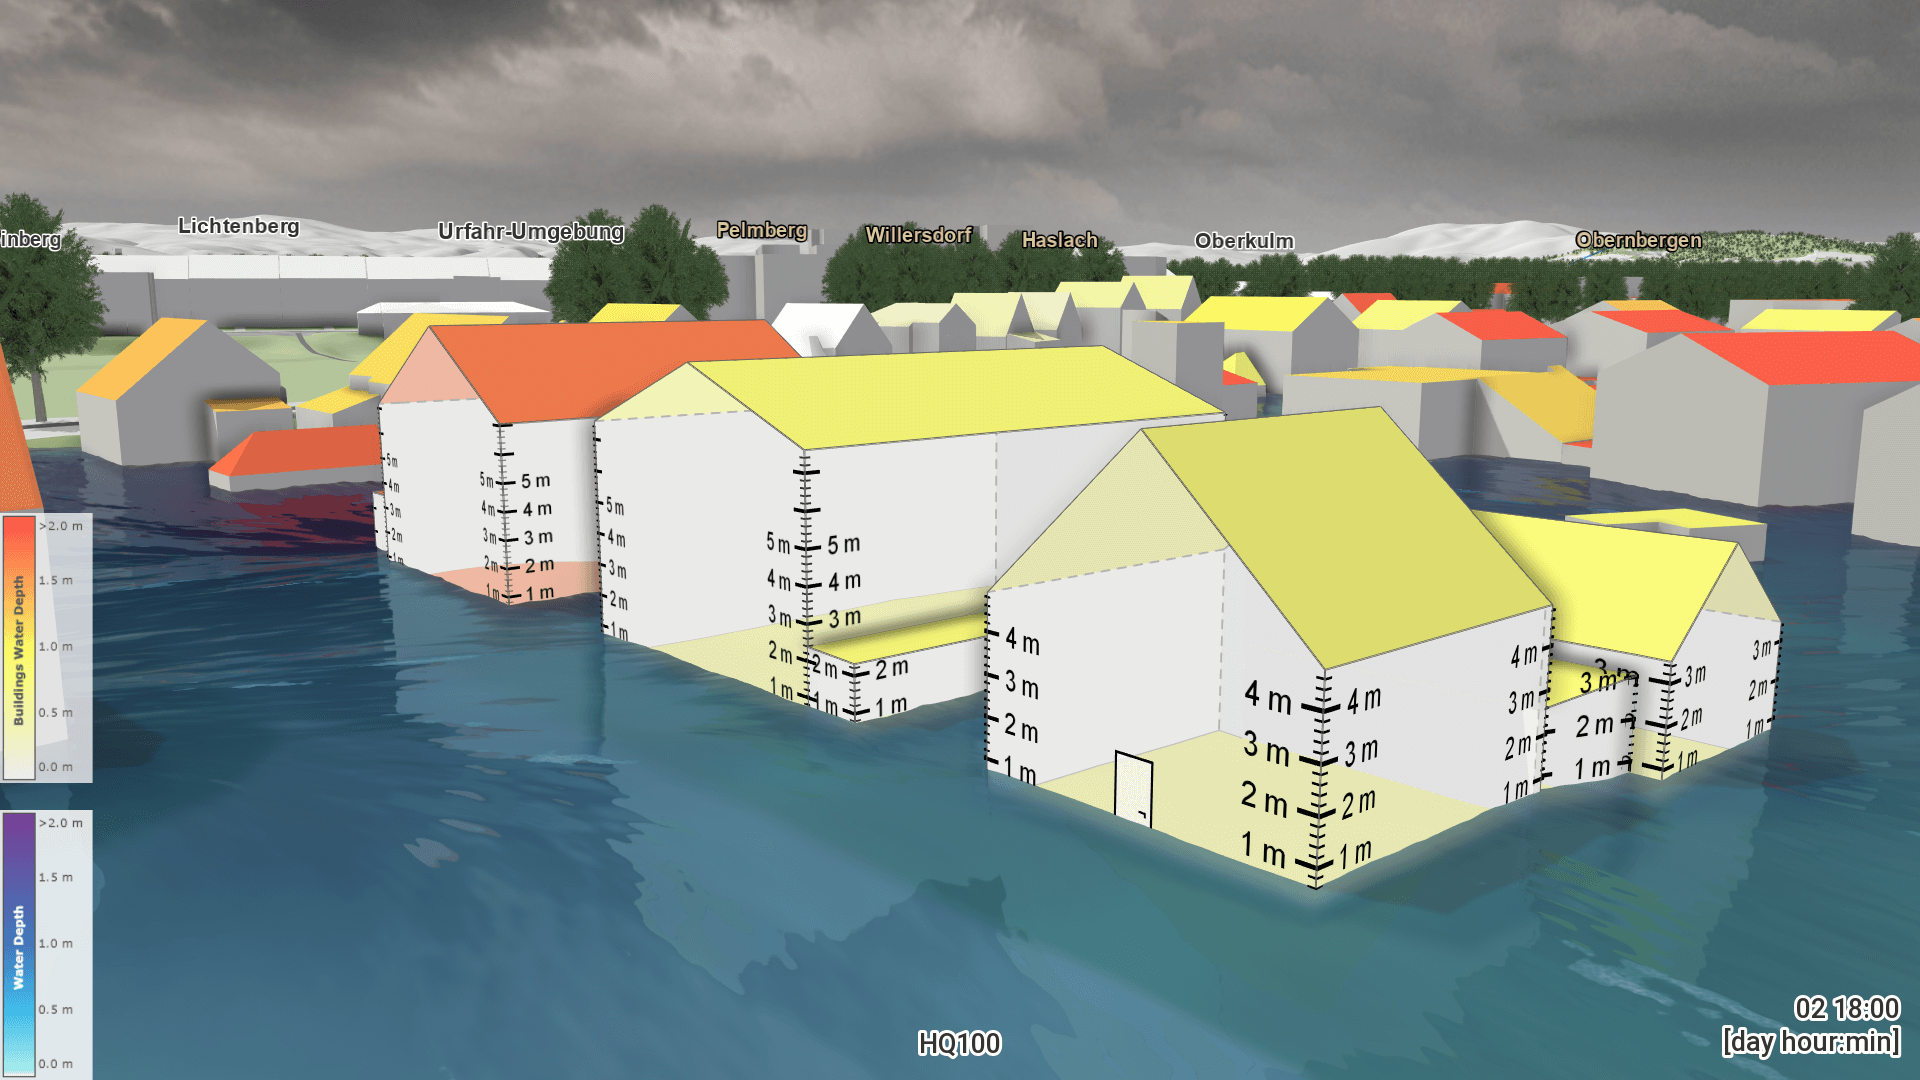 Visualization of a flood scenaria by Visdom